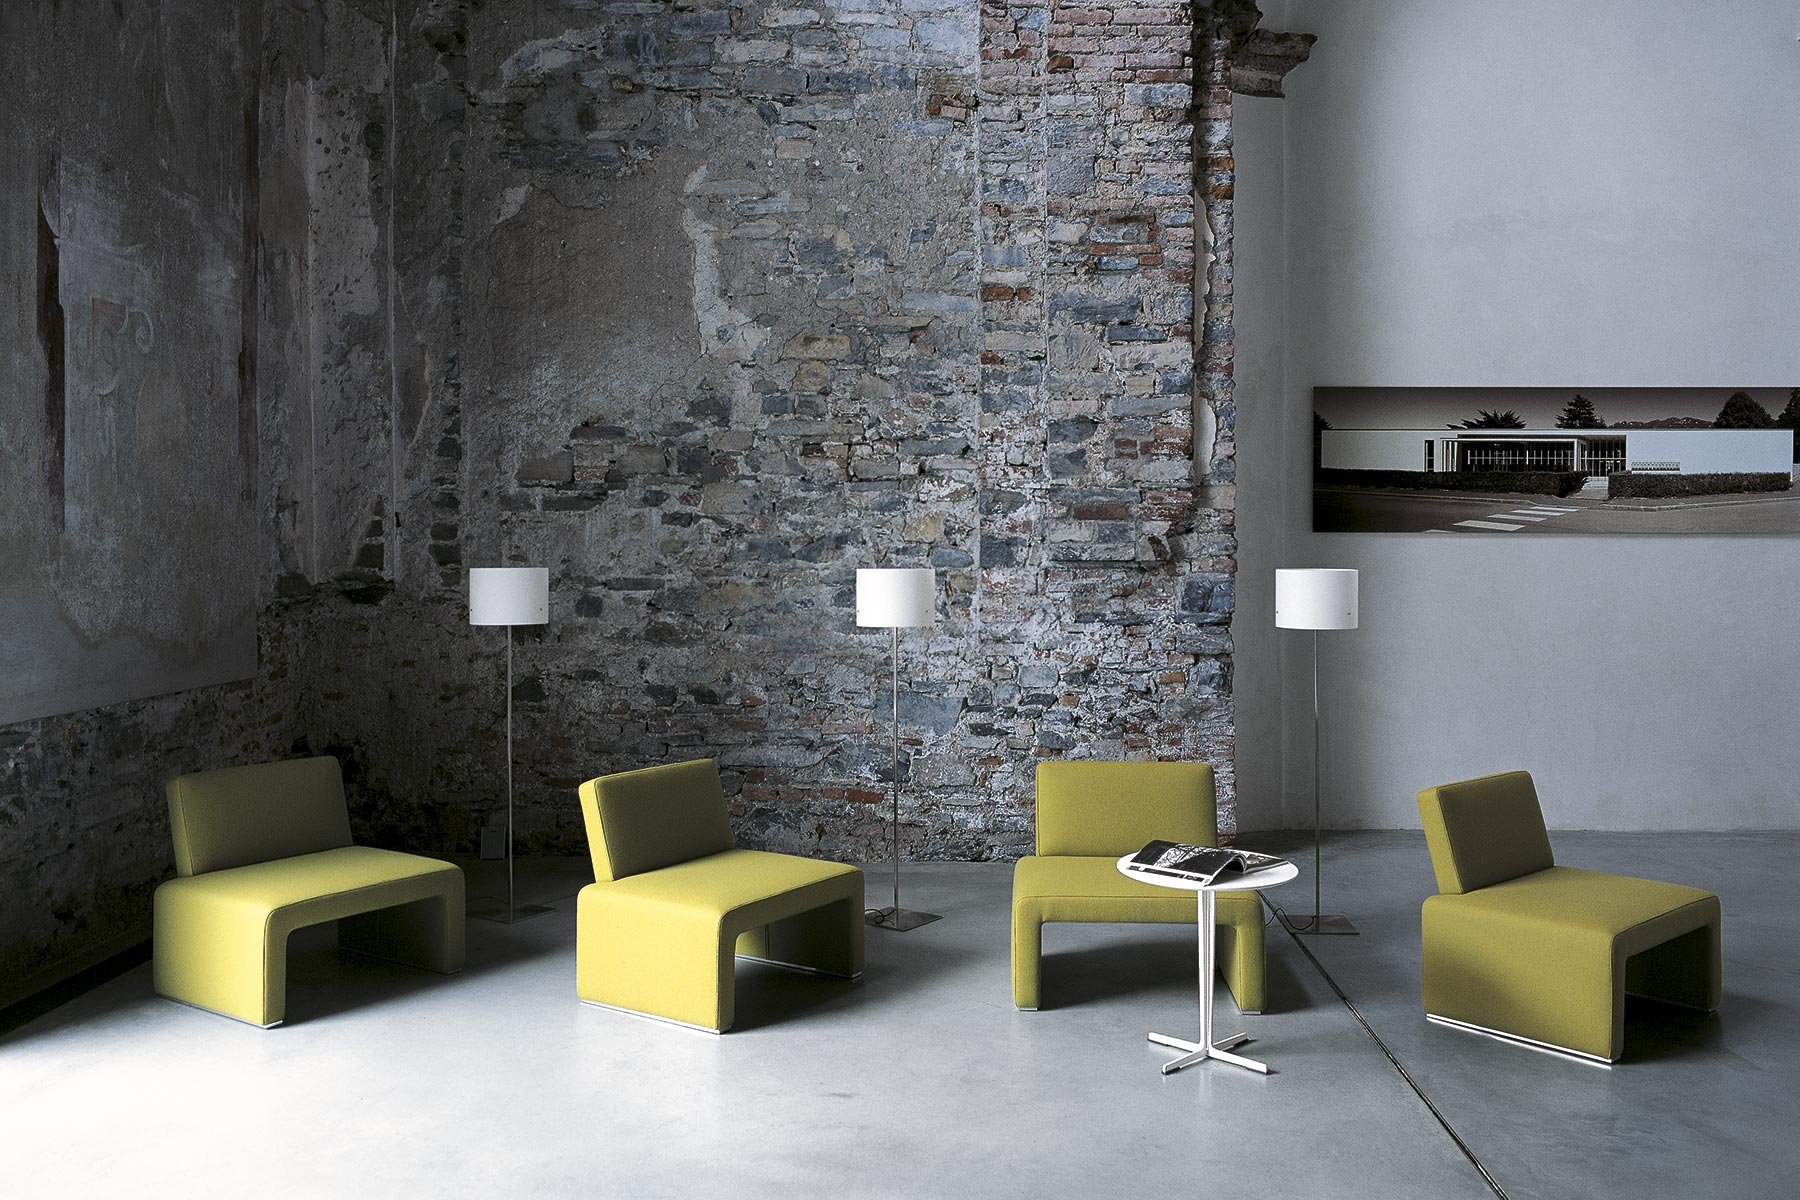 Labanca Sofa from Tacchini